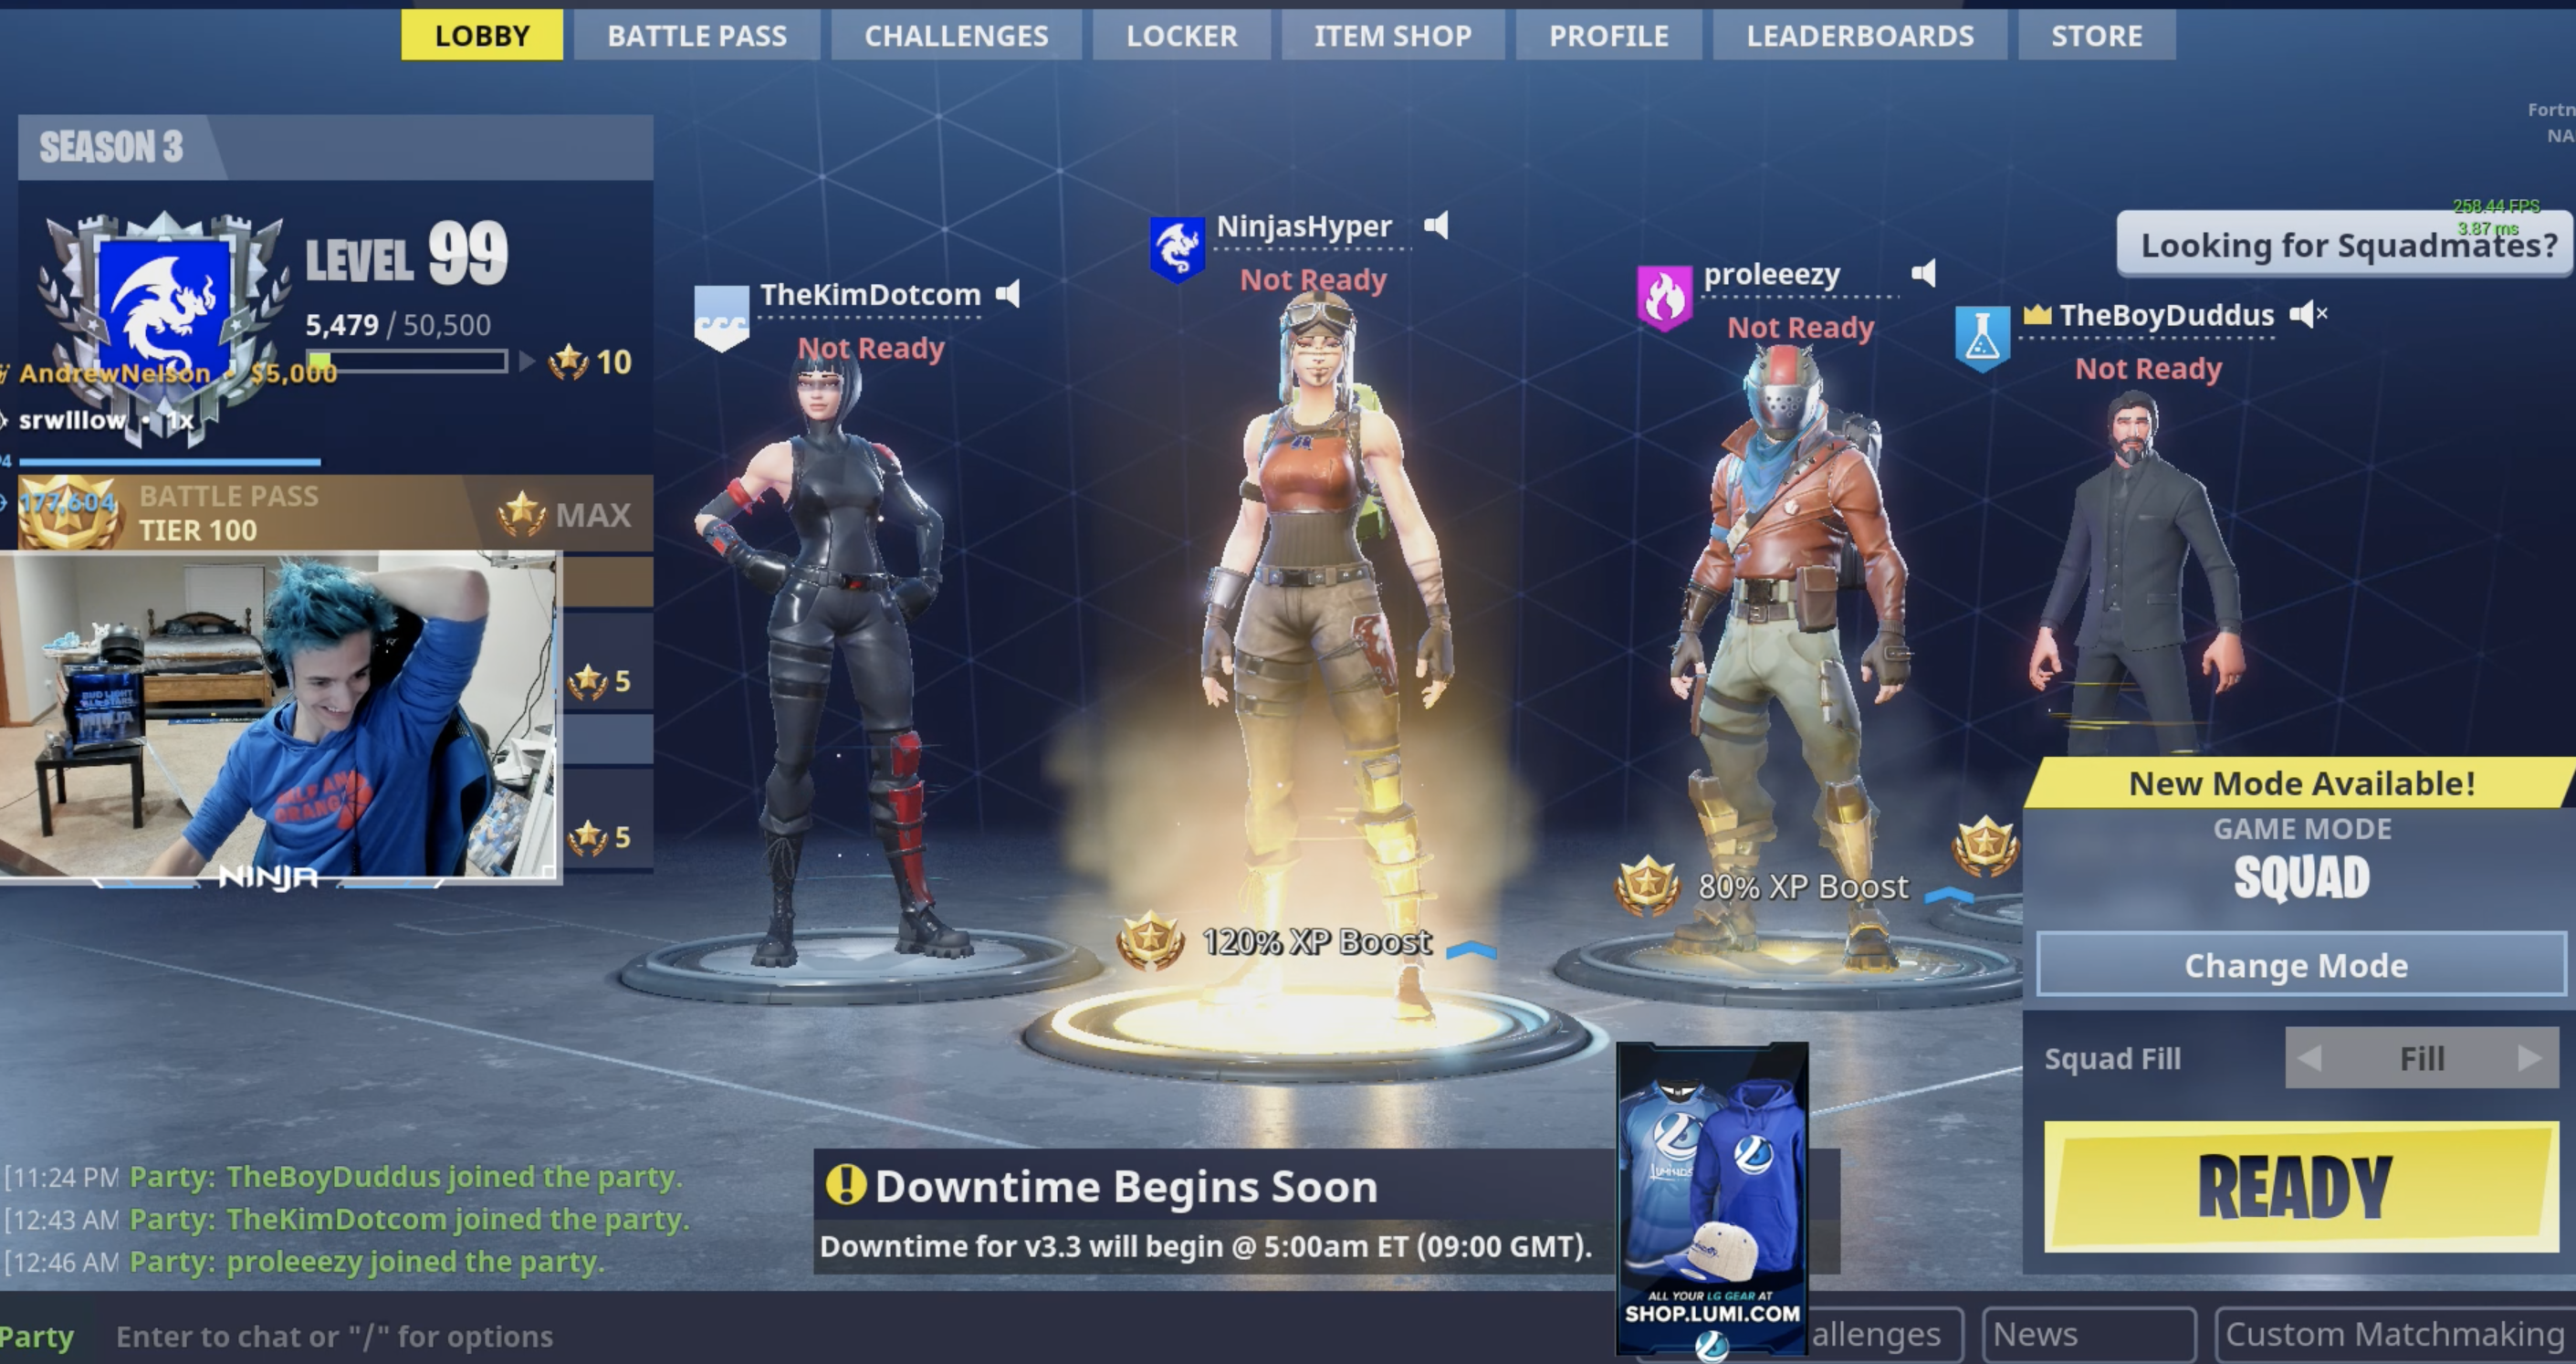 Drake and Ninja are playing Fortnite live on Twitch